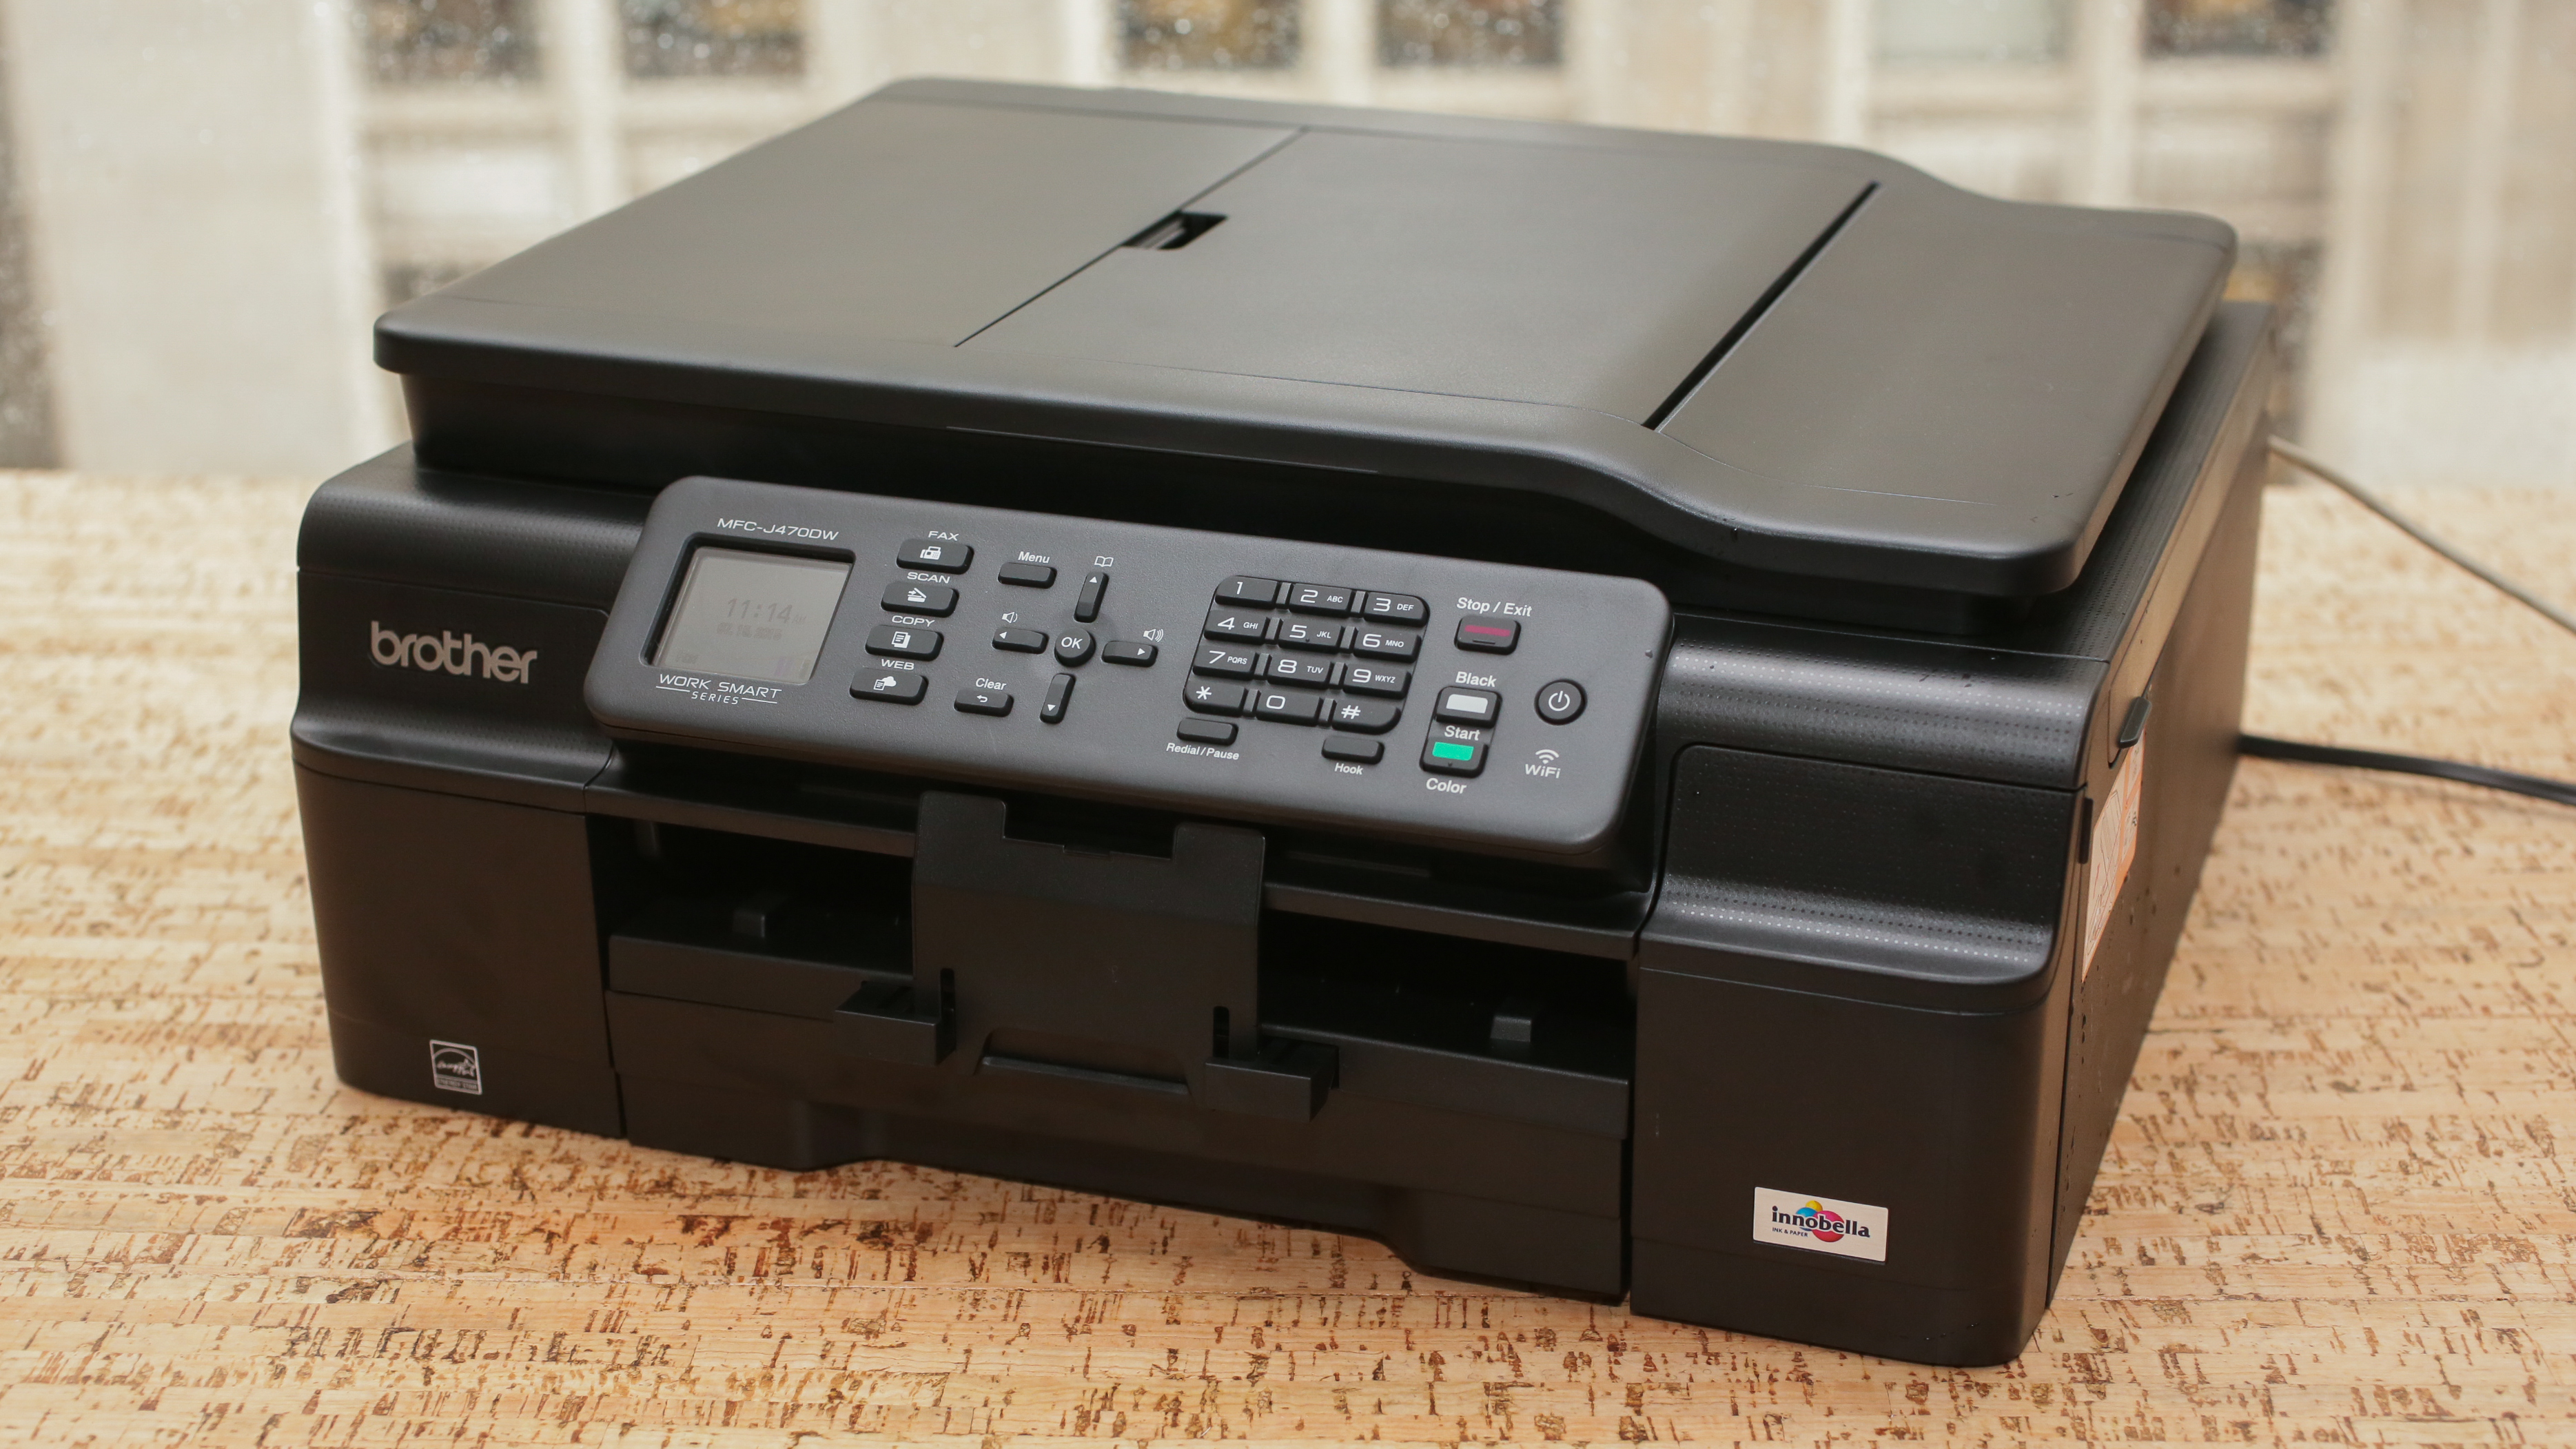 brother-mfc-j470dw-09.jpg